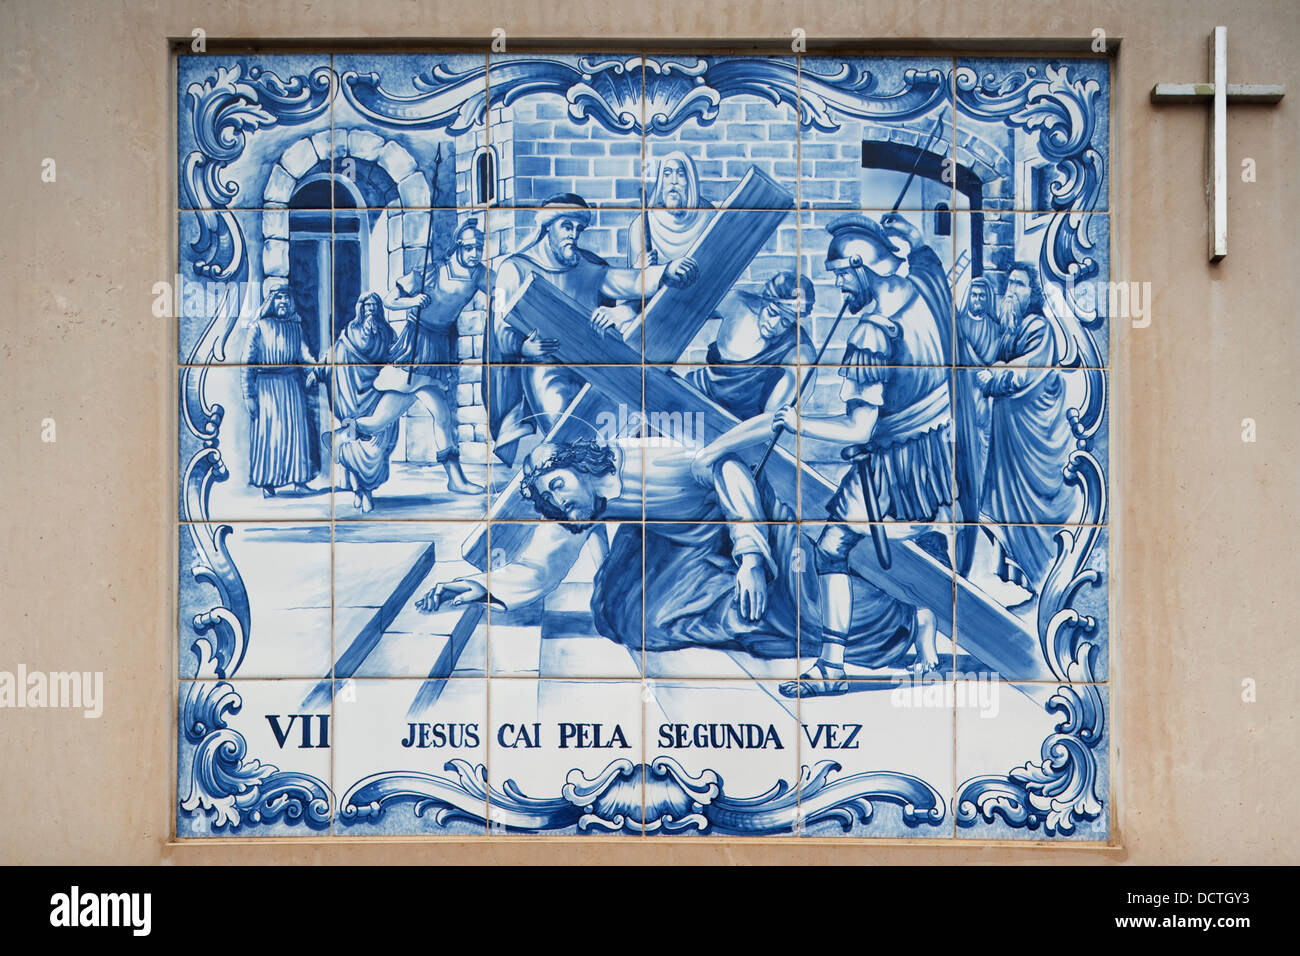 Painted ceramic tile depicting the seventh station of the cross as painted ceramic tile depicting the seventh station of the cross as jesus falls for the second time porto de mos portugal dailygadgetfo Images